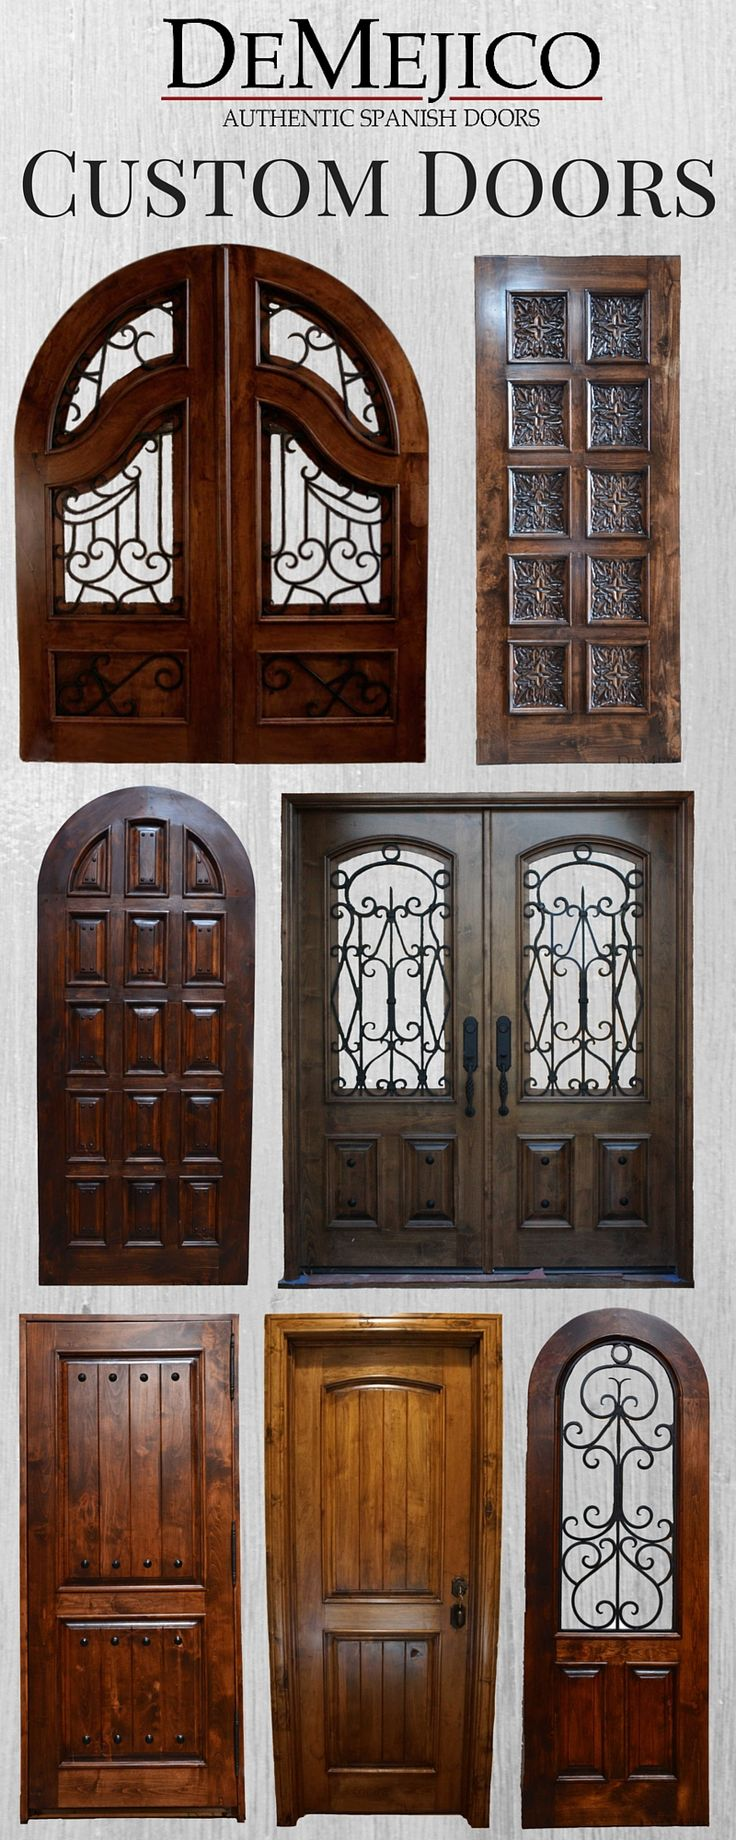 We build a unique selection of Hand Crafted doors. Come by our Showroom in Valencia, CA